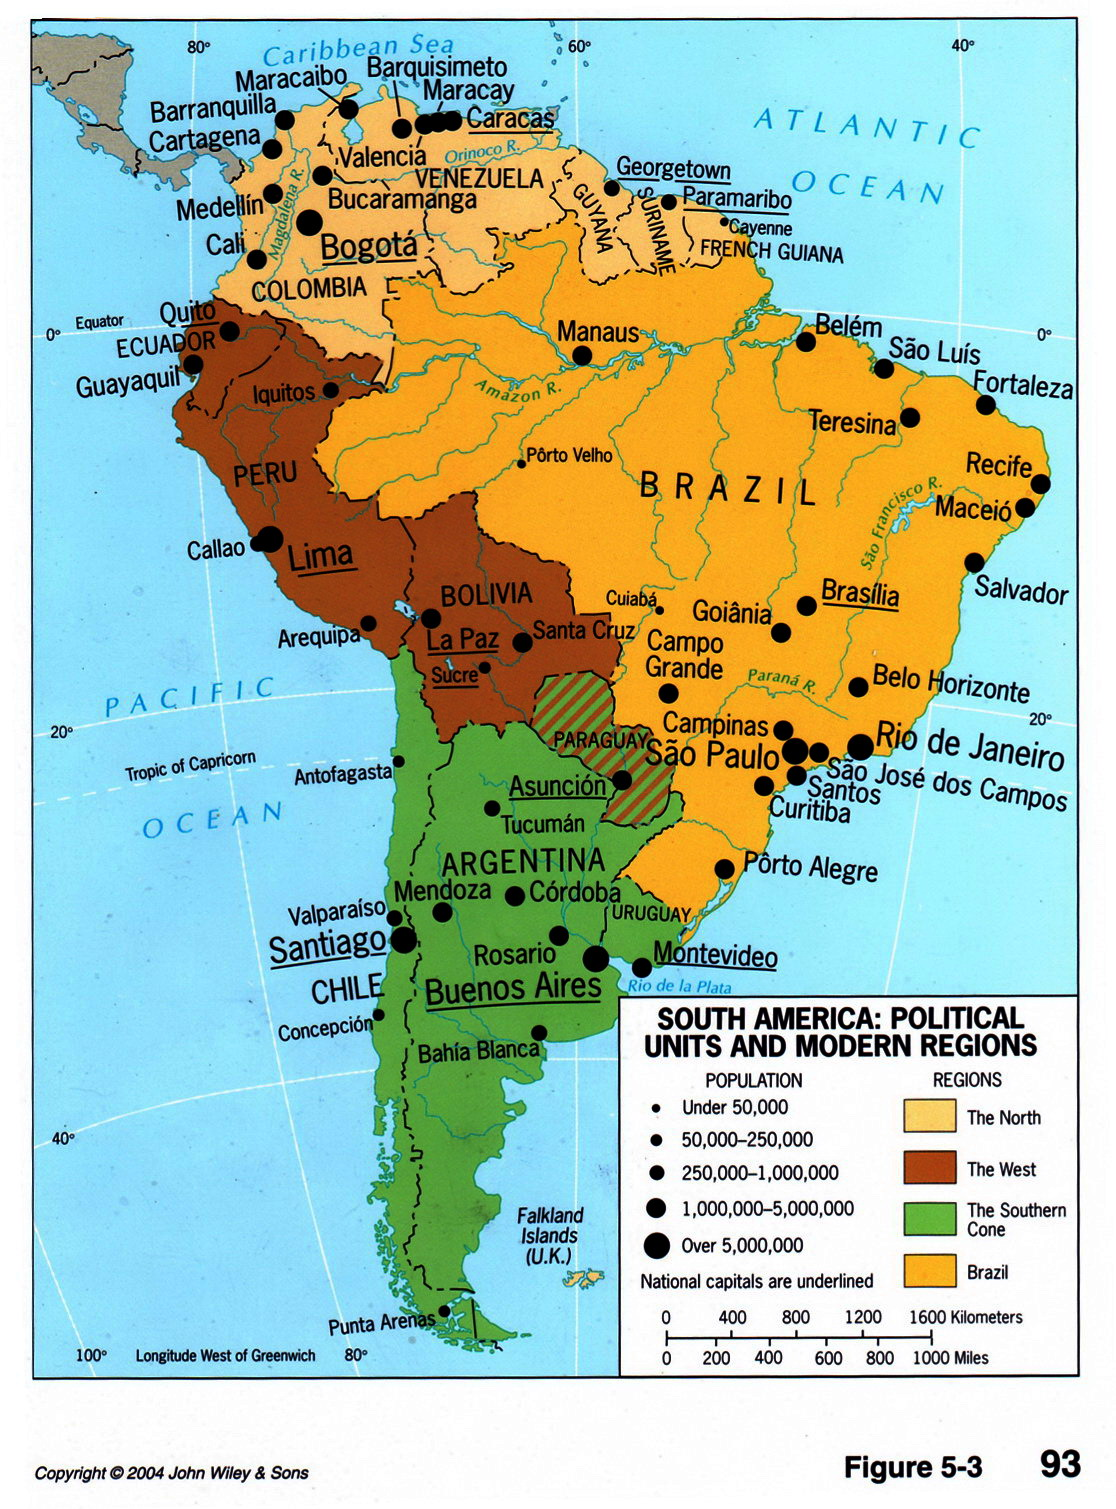 South America political divisions and regions 2004